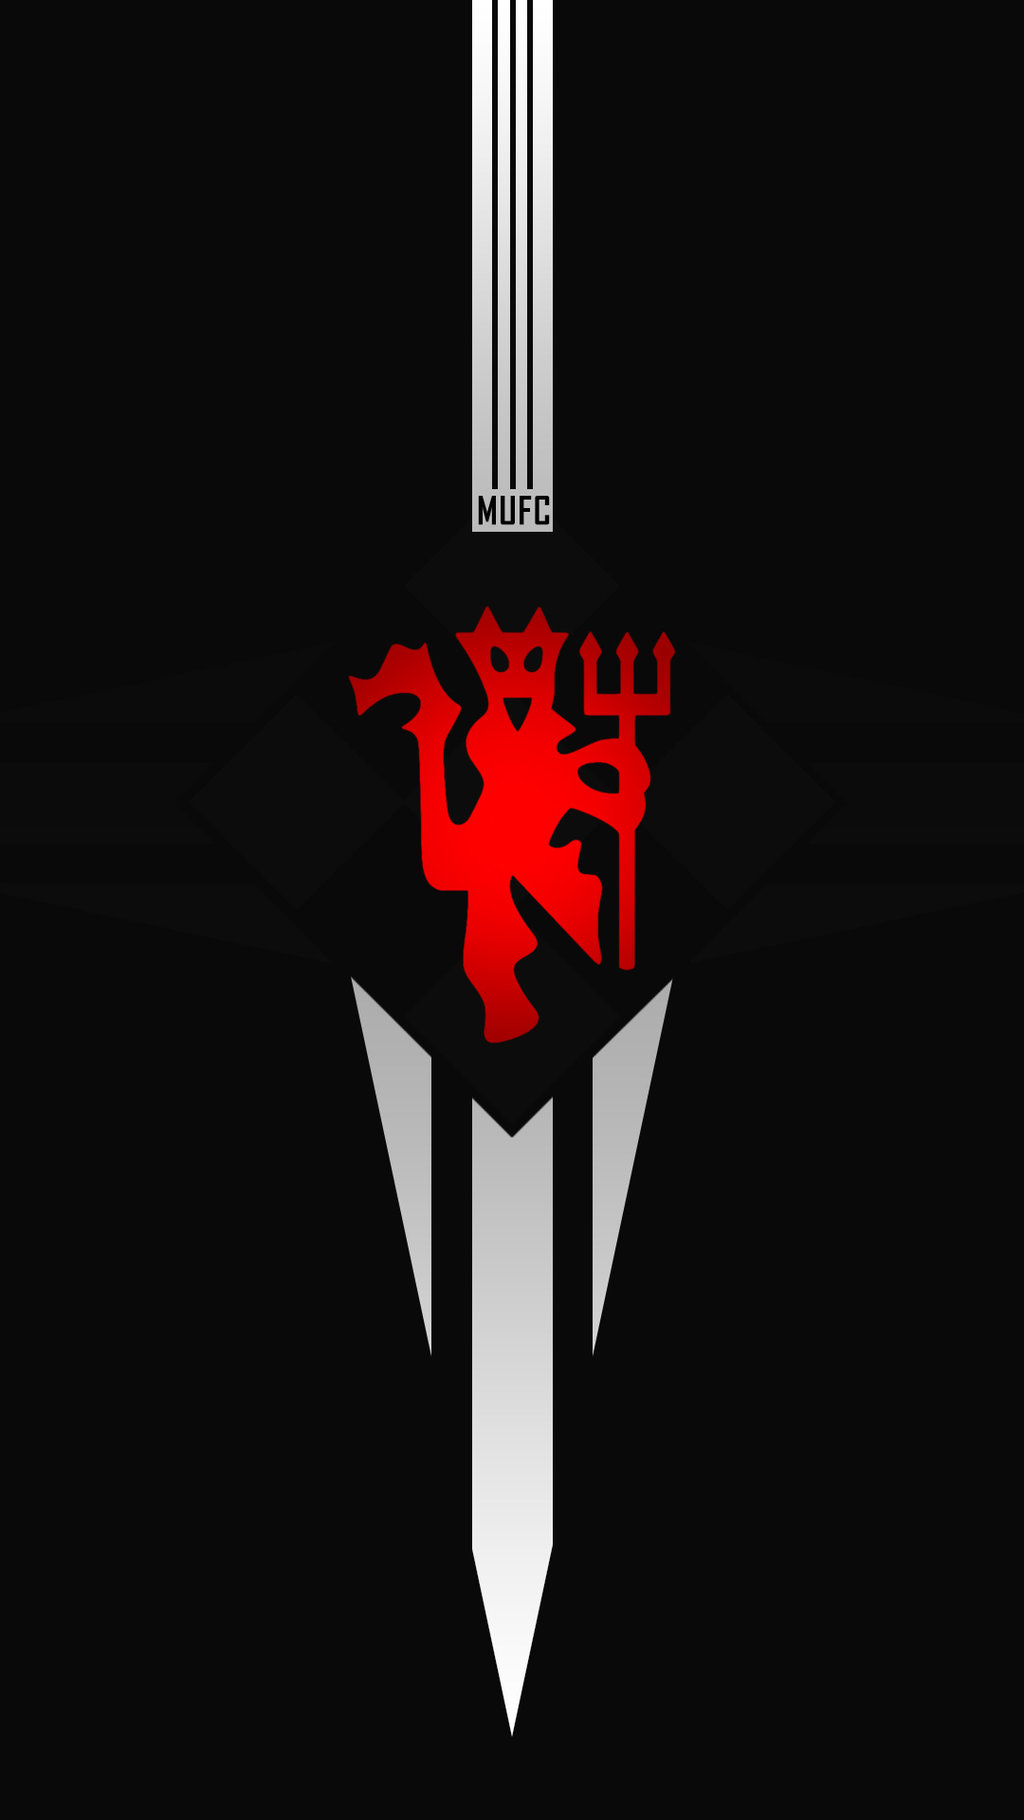 Man United Hd Logo Wallpapers For Iphone And Android Mobiles